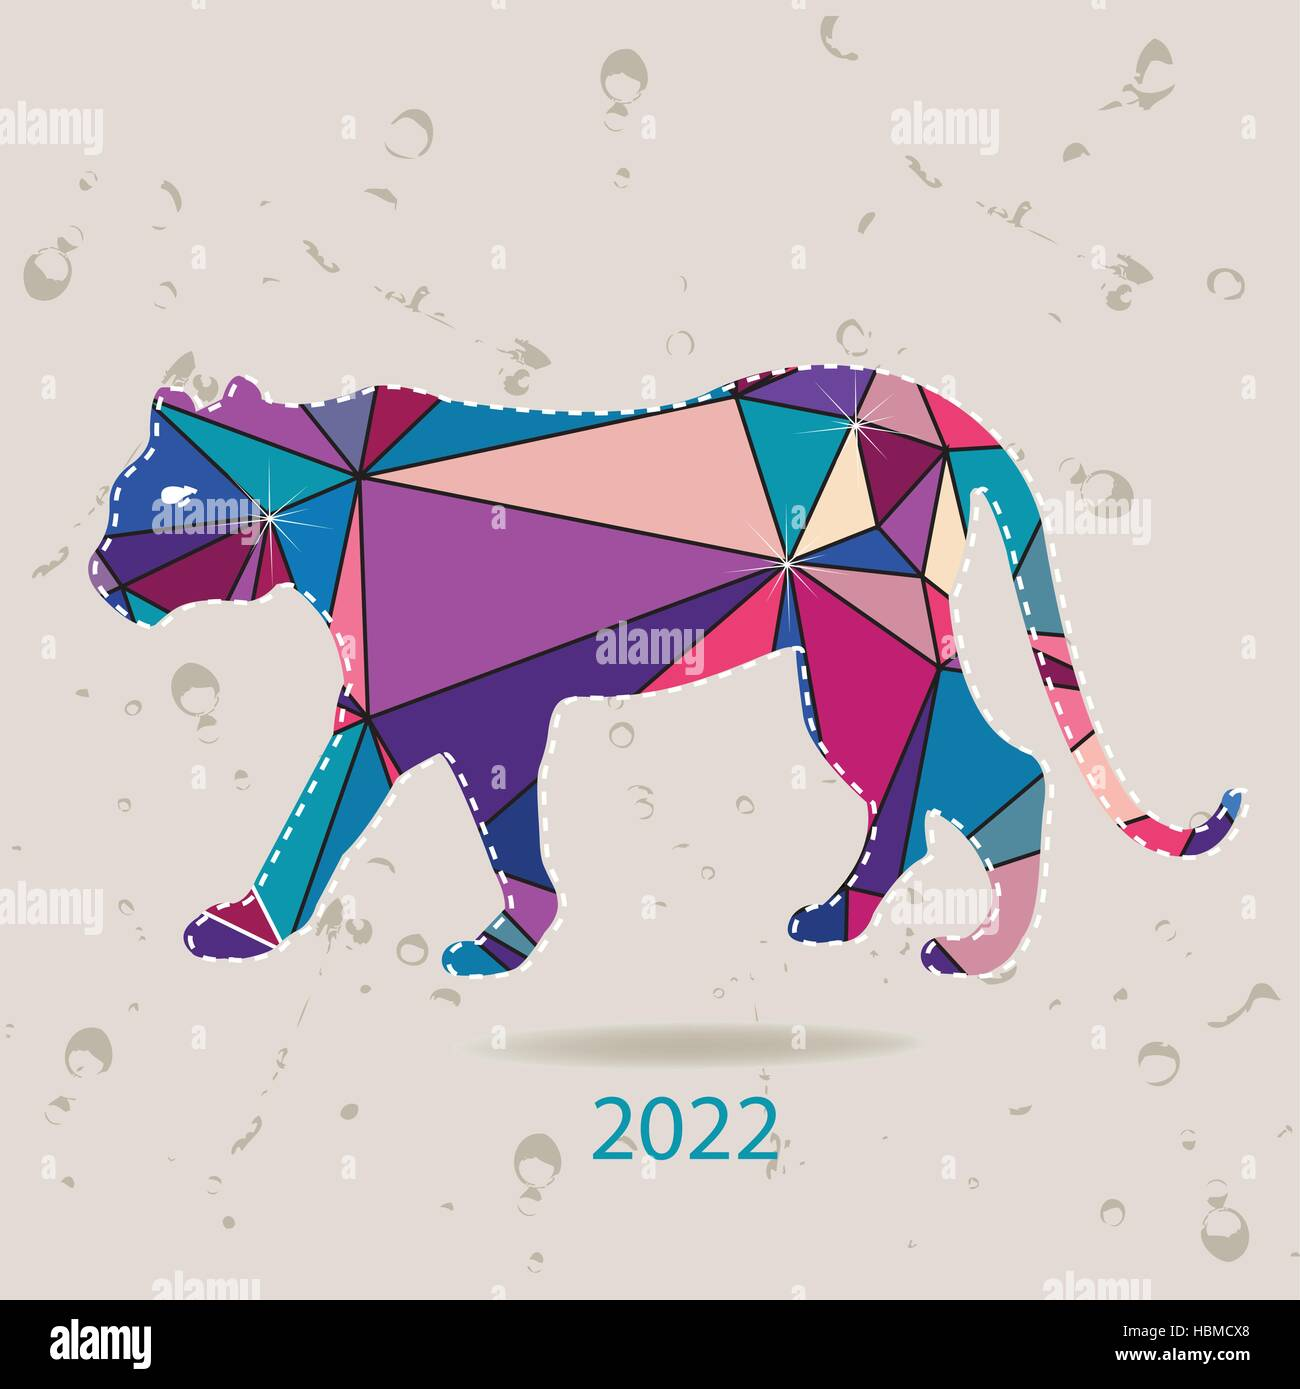 The 2022 new year card with Tiger made of triangles - Stock Image